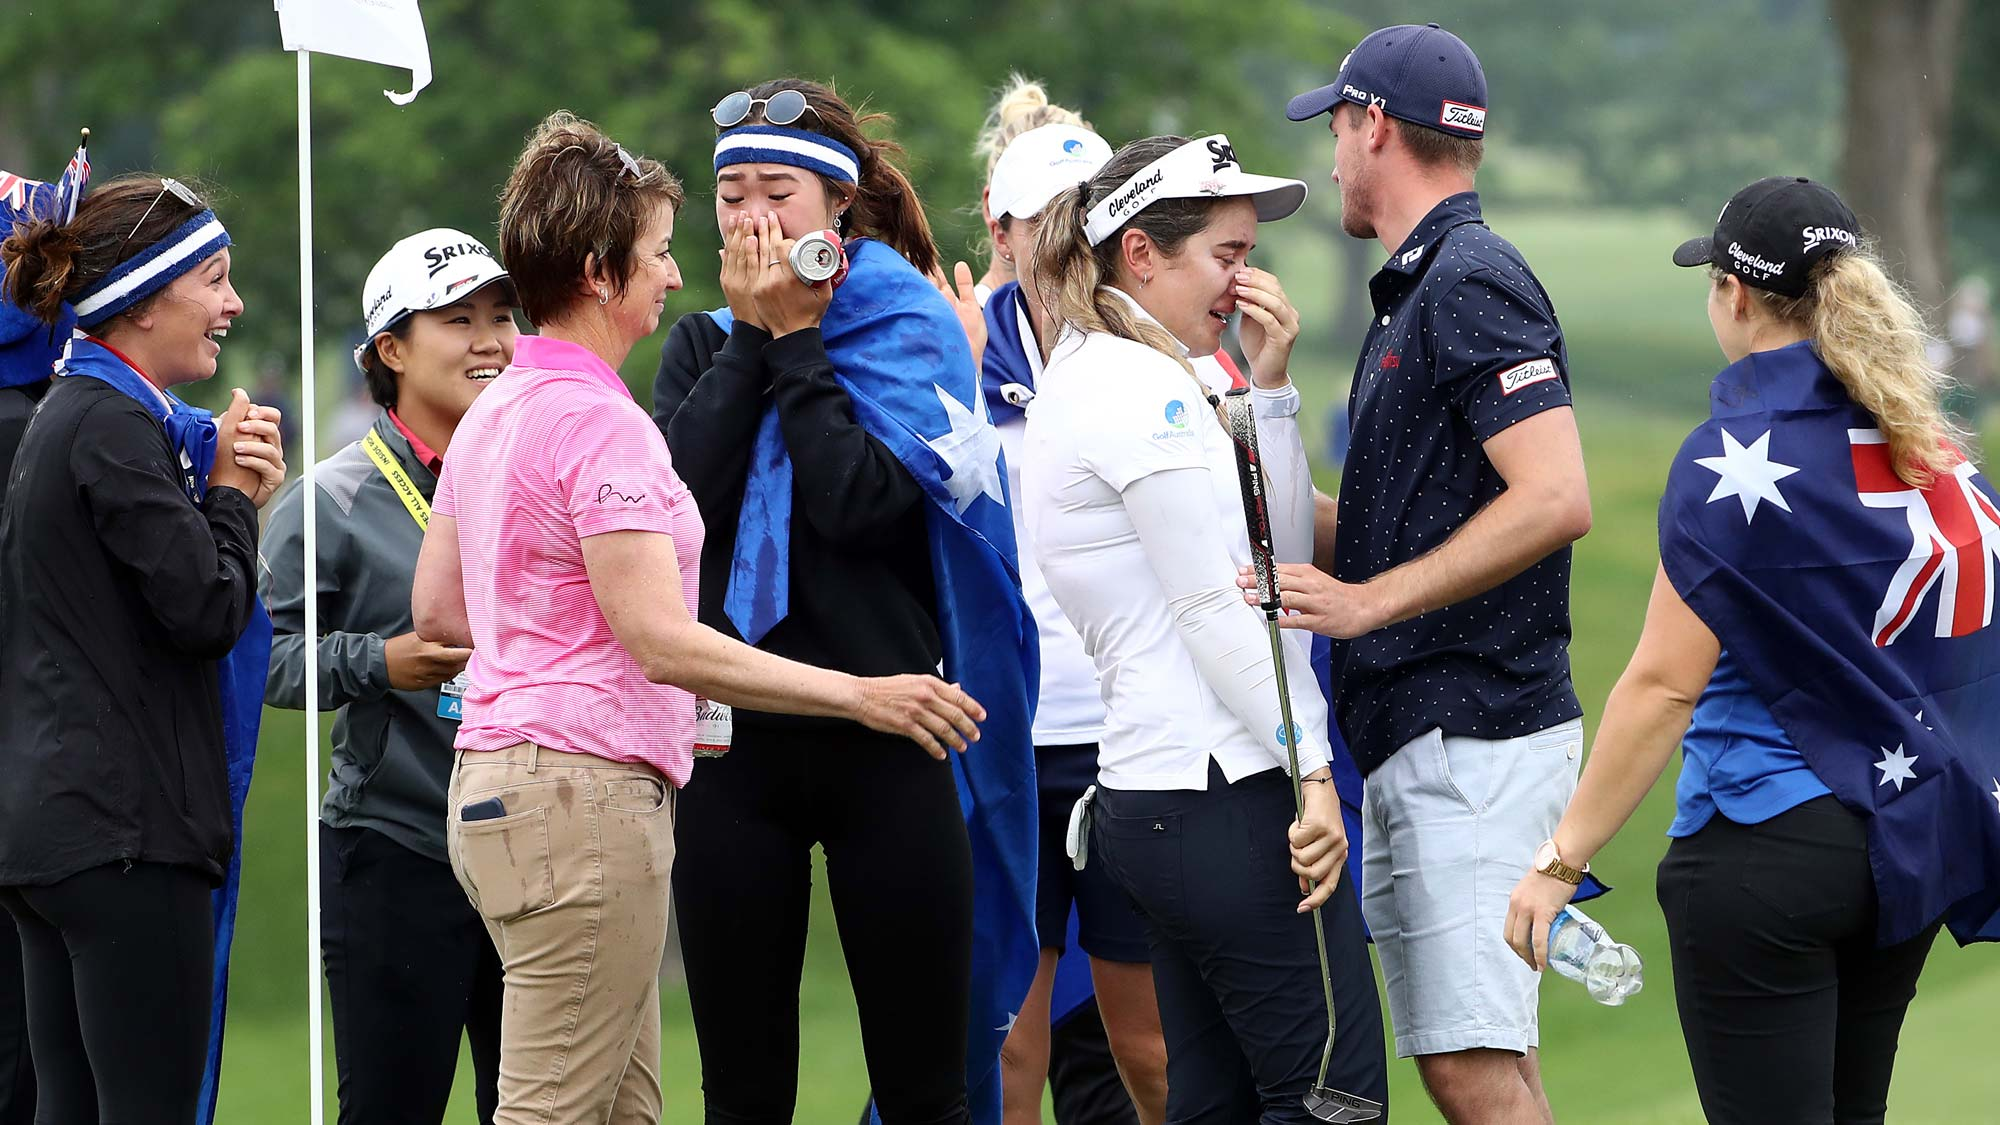 Hannah Green of Australia is swarmed by friends on the green after winning the KPMG Women's PGA Championship at Hazeltine National Golf Course